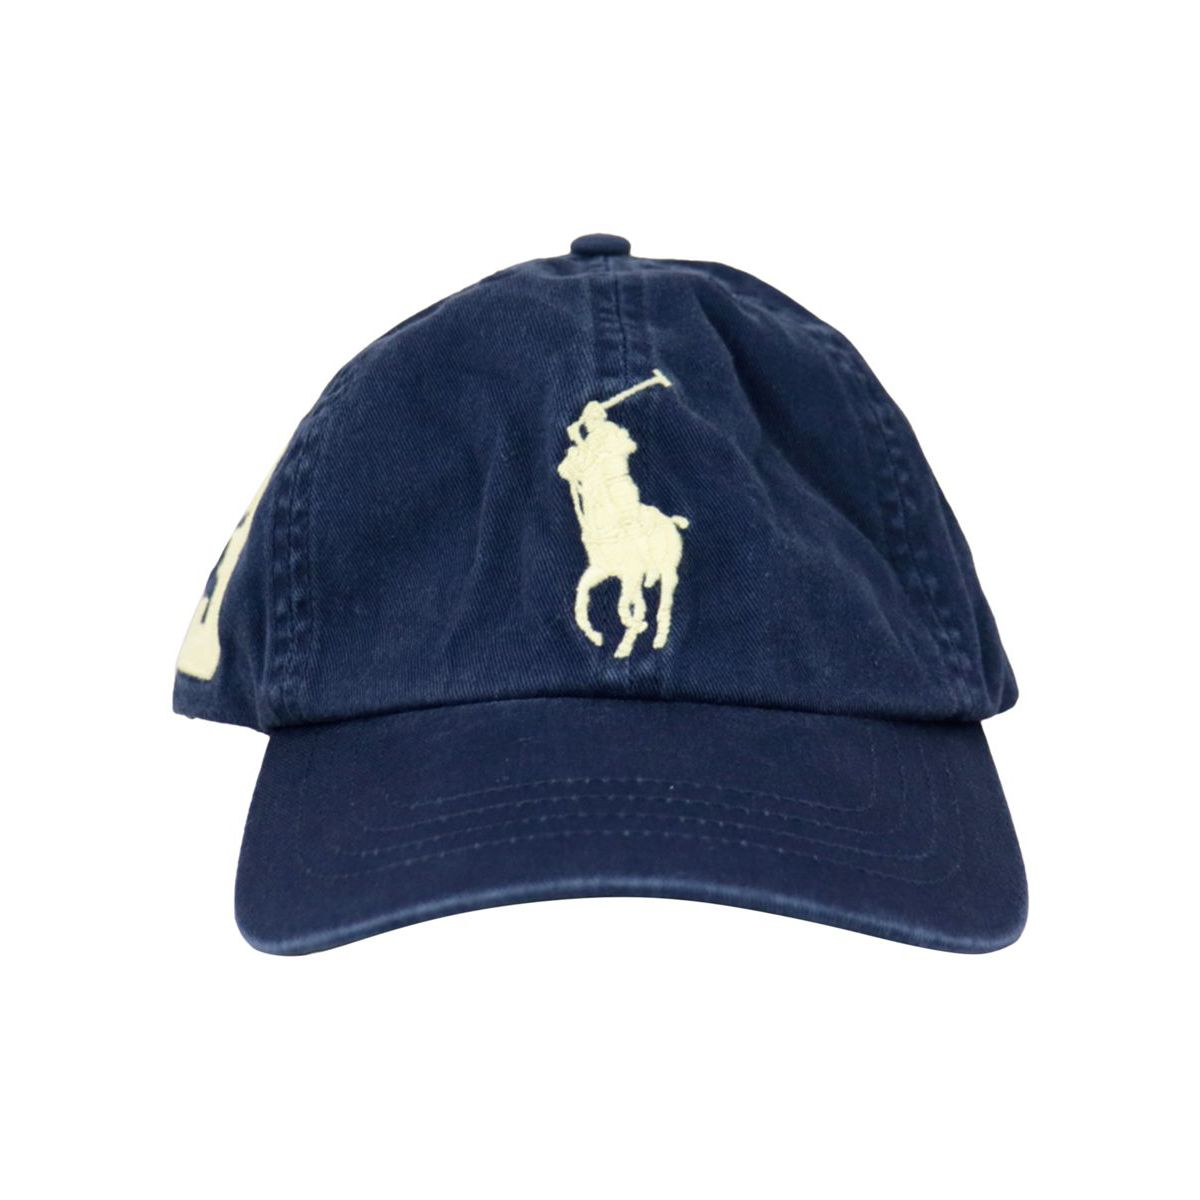 Cotton hat with embroidered logo Navy Polo Ralph Lauren